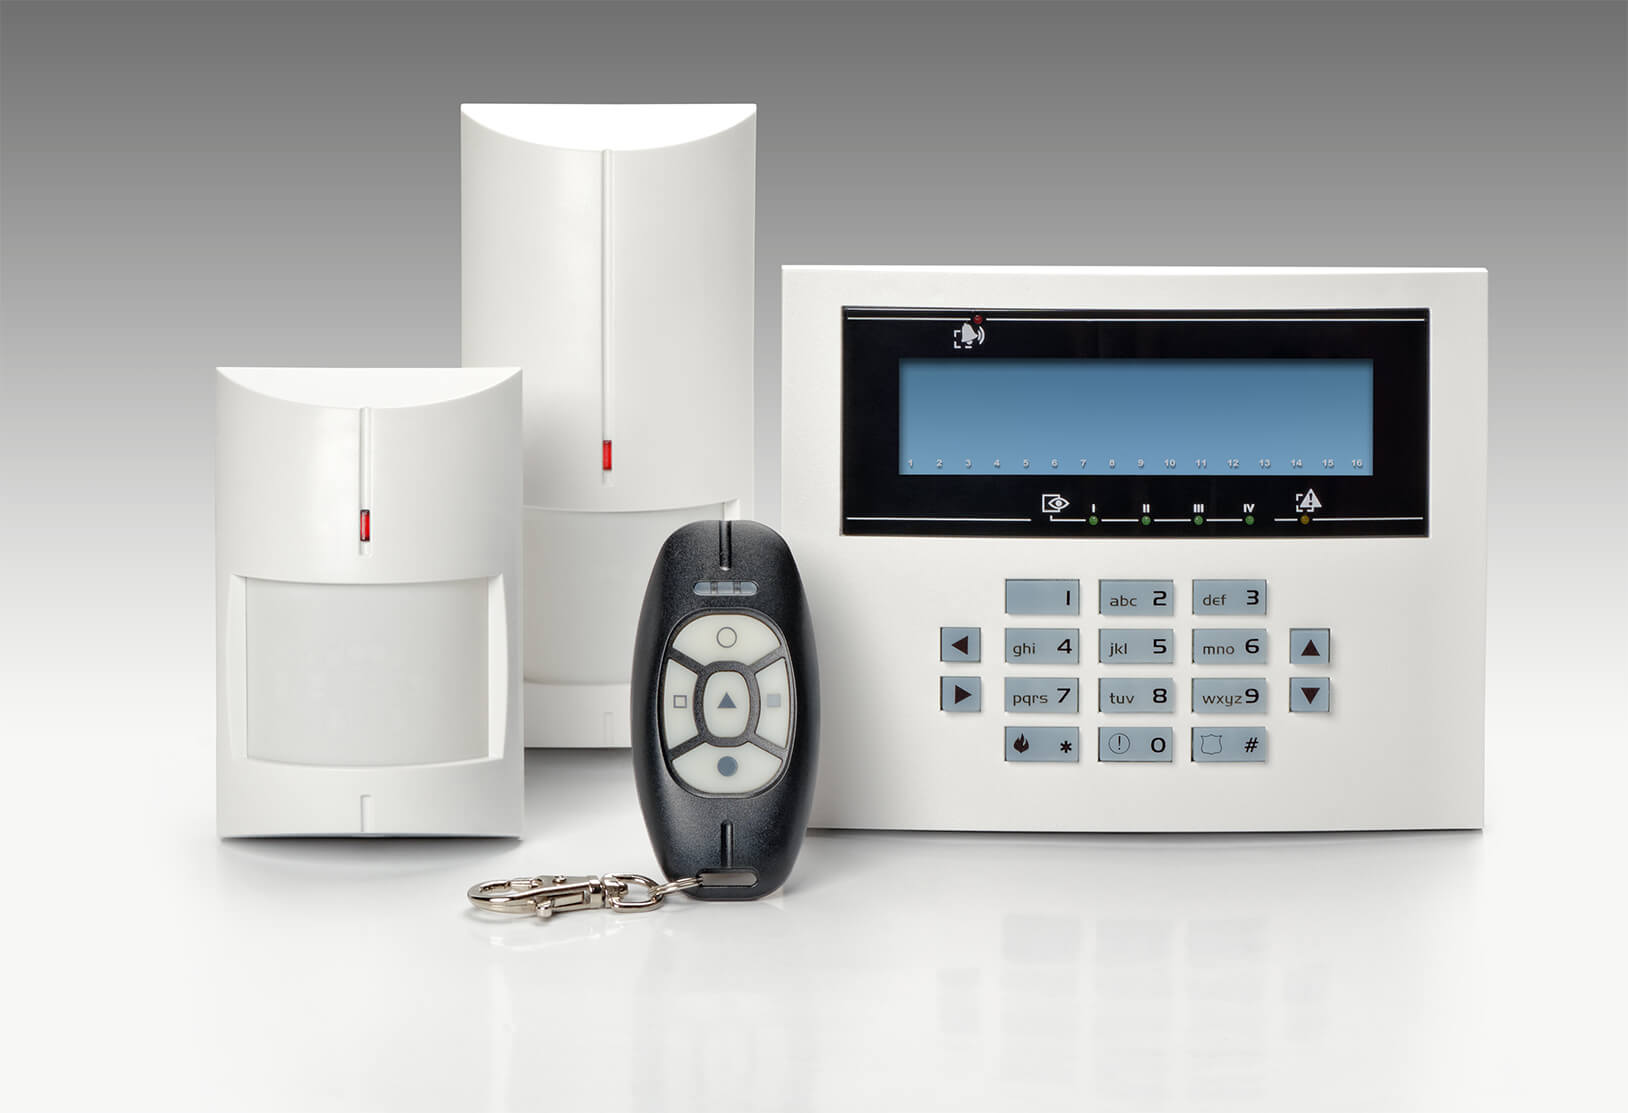 Business & Residential NACOSS Approved Burglar Alarms In Brompton SW3 - Local Brompton SW3 security company.Call 02078872244 - Dedicated to Safety & Security. Companies, shops and homes ..